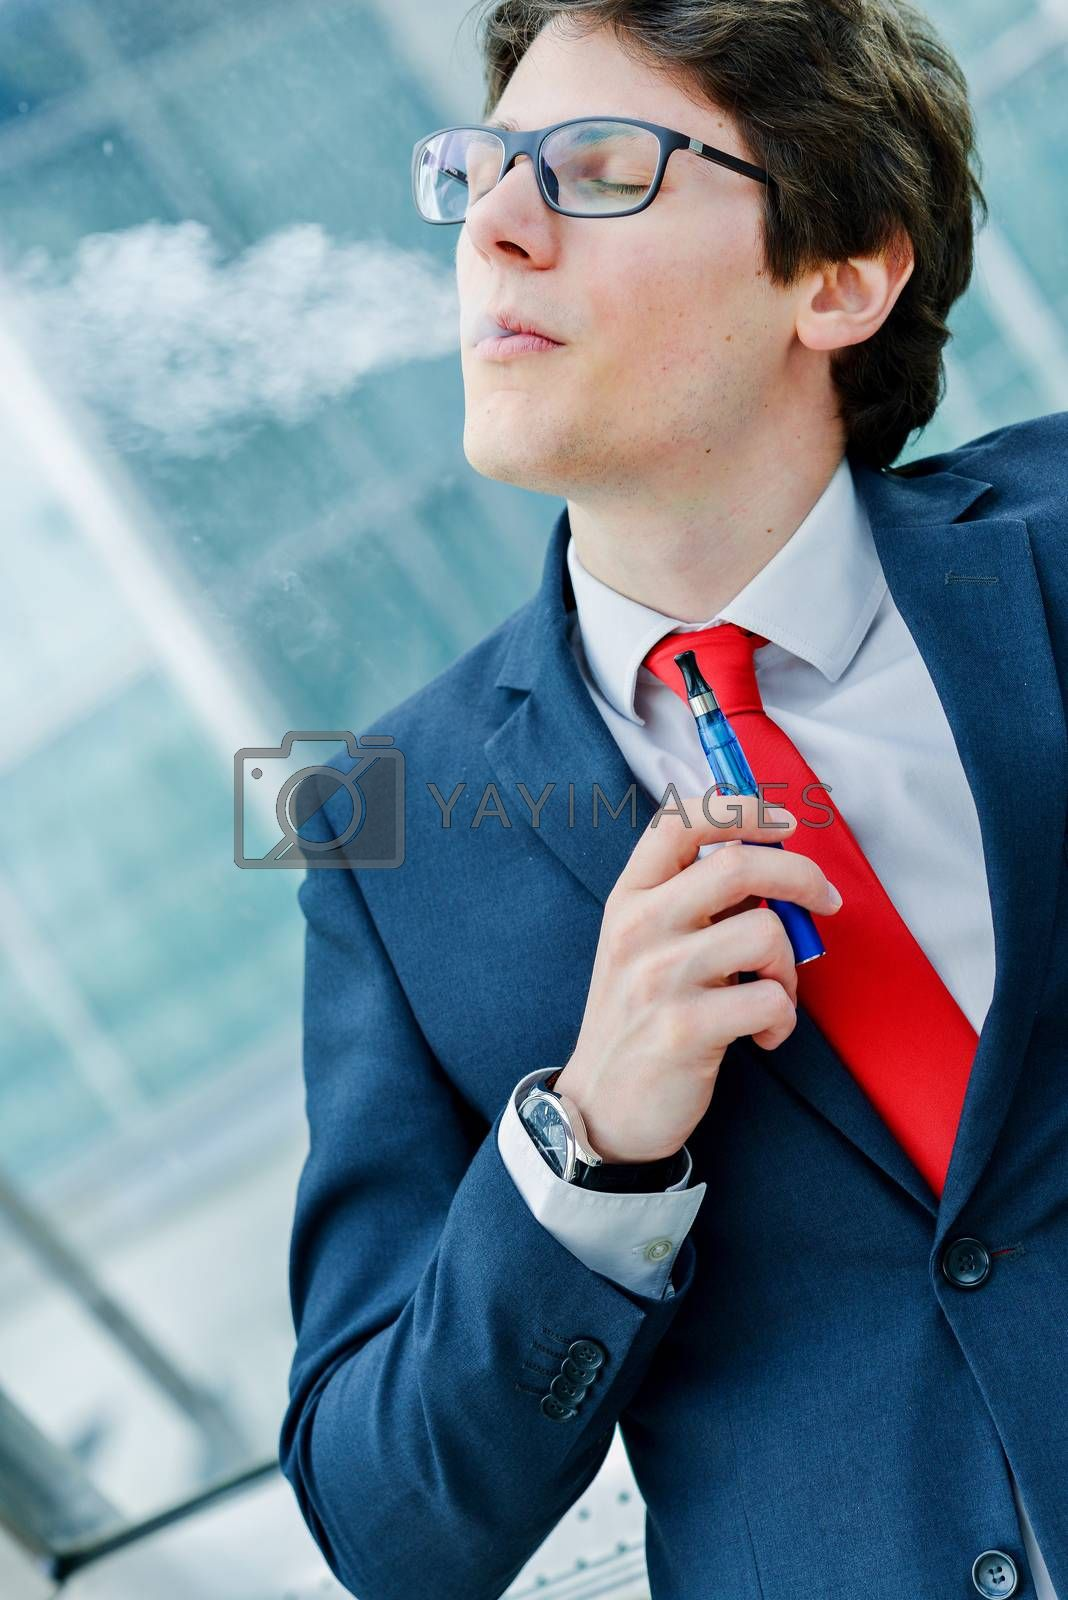 Royalty free image of Cute young adult man inhaling from an electronic cigarette by pixinoo